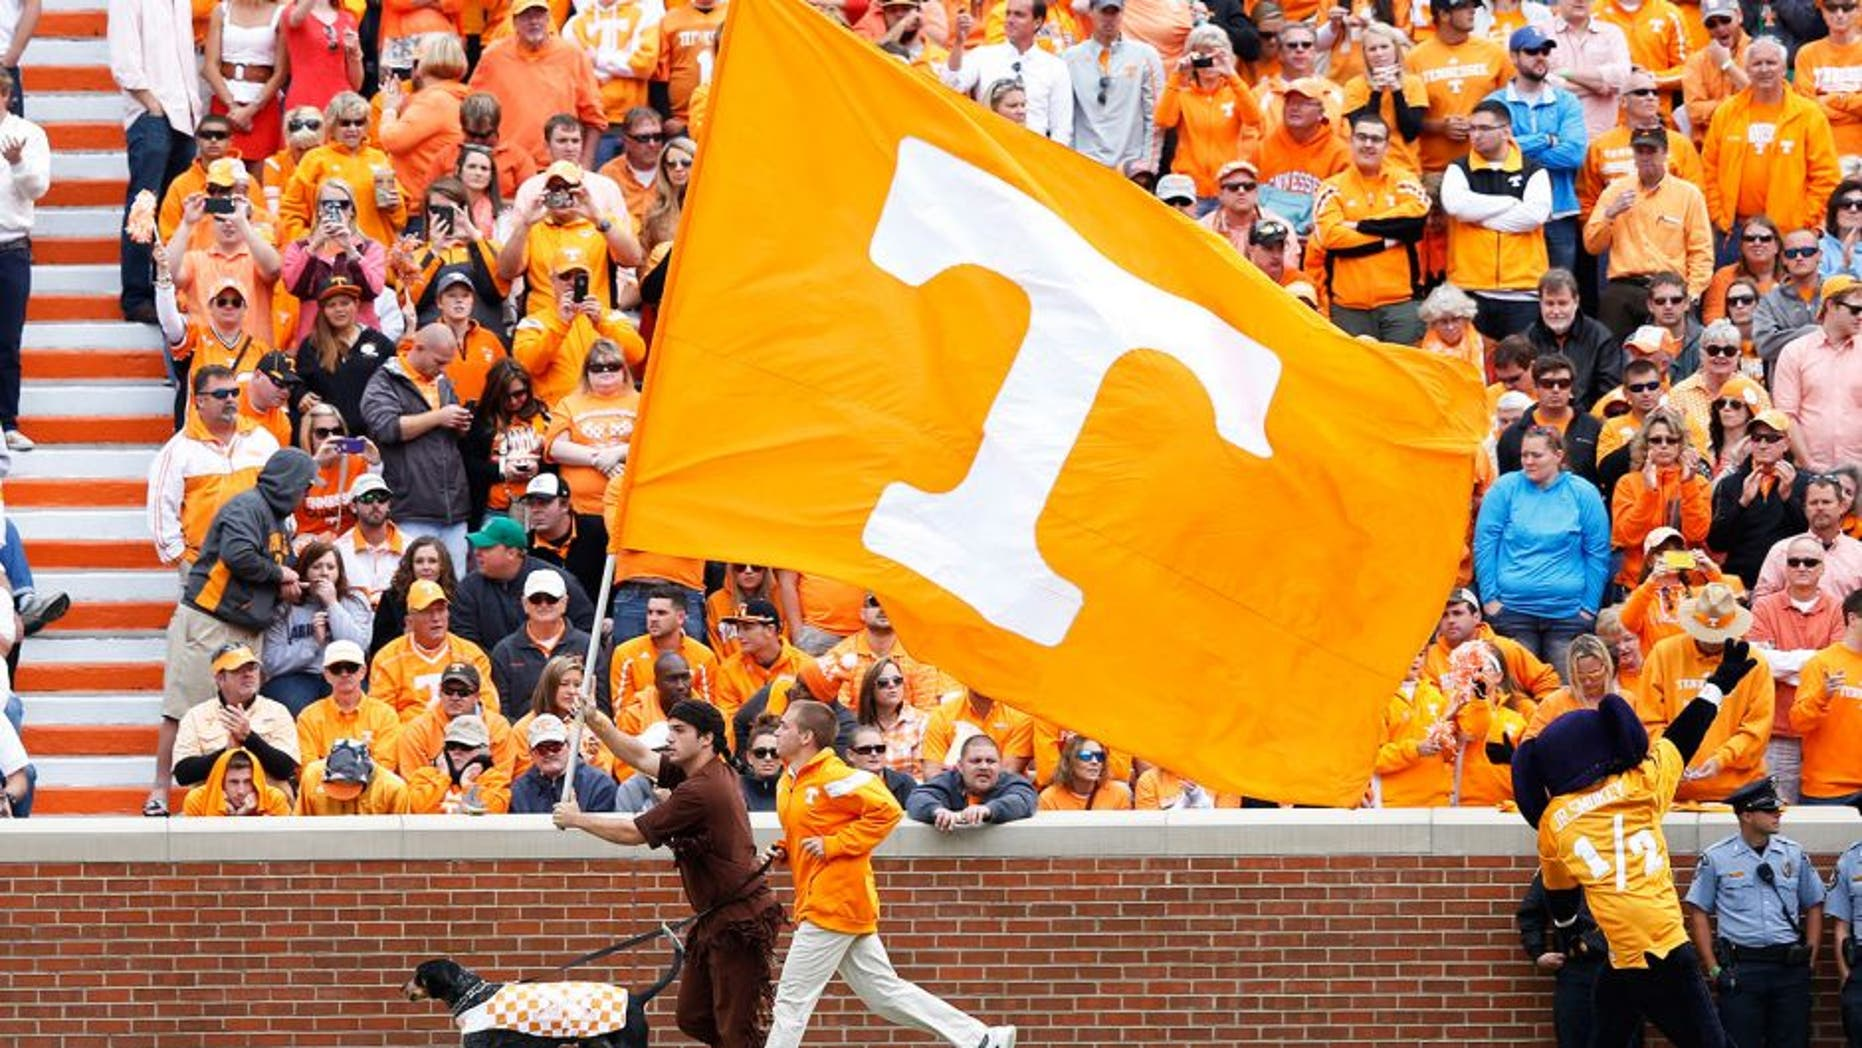 KNOXVILLE, TN - OCTOBER 4: Tennessee flag waves during the game between the Florida Gators and Tennessee Volunteers at Neyland Stadium on October 4, 2014 in Knoxville, Tennessee. Florida defeated Tennessee 10-9. (Photo by Joe Robbins/Getty Images) *** Local Caption ***